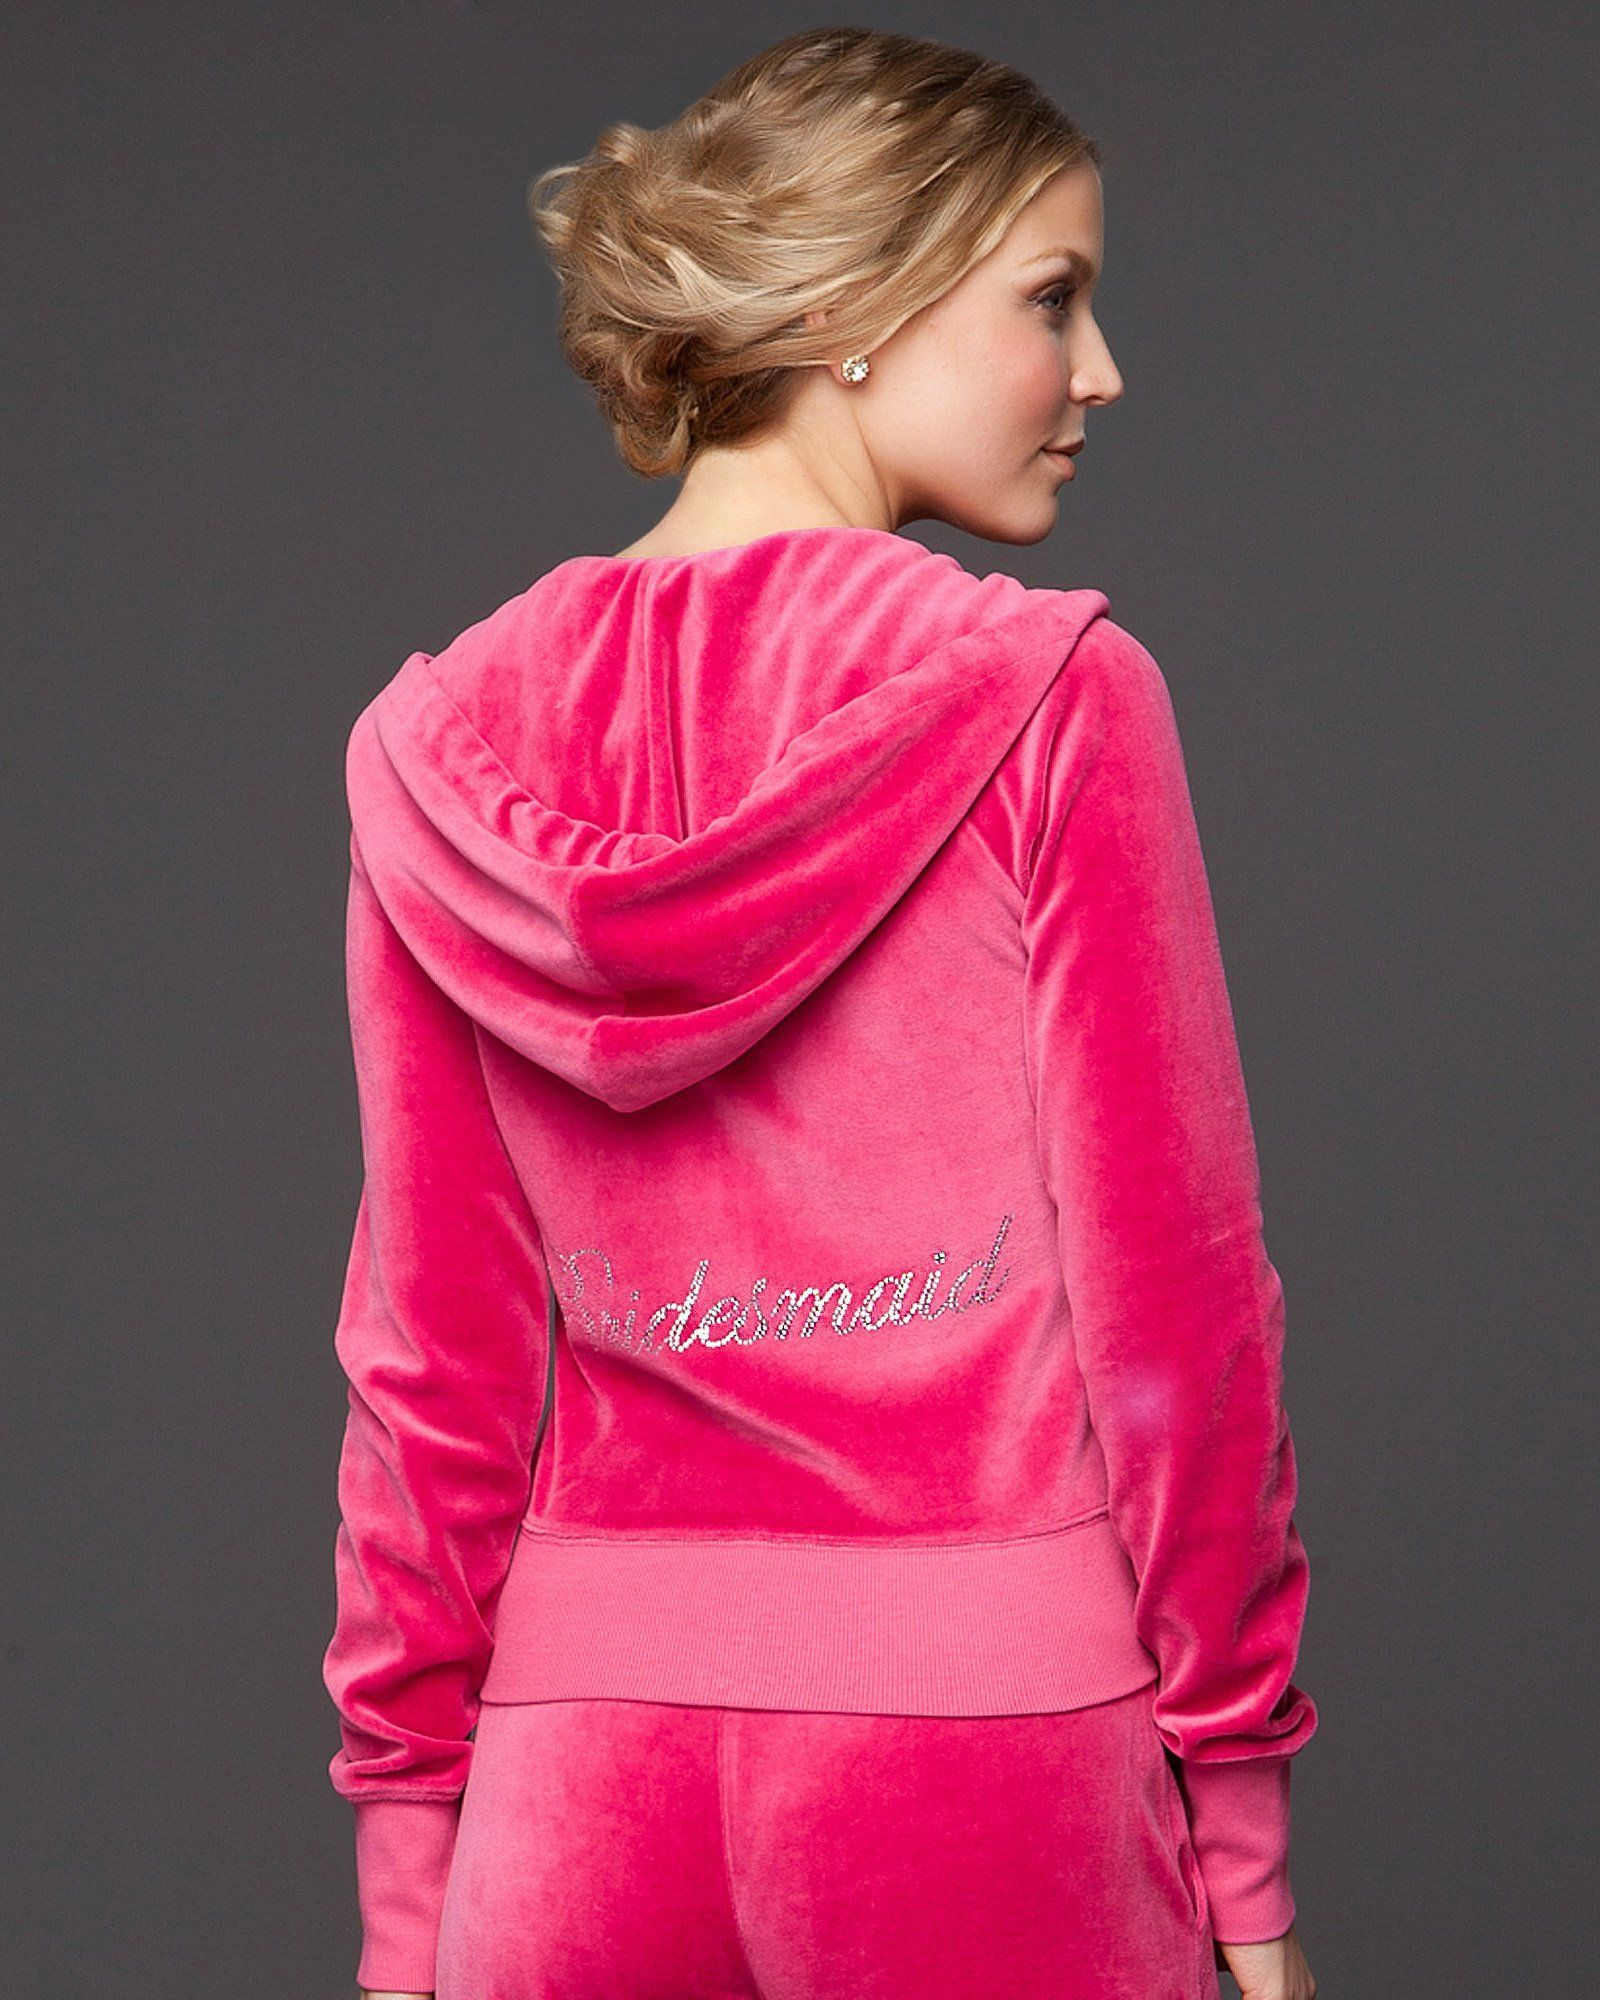 Bridesmaid Sweatsuits for the bridesmaids during bachelorette ...